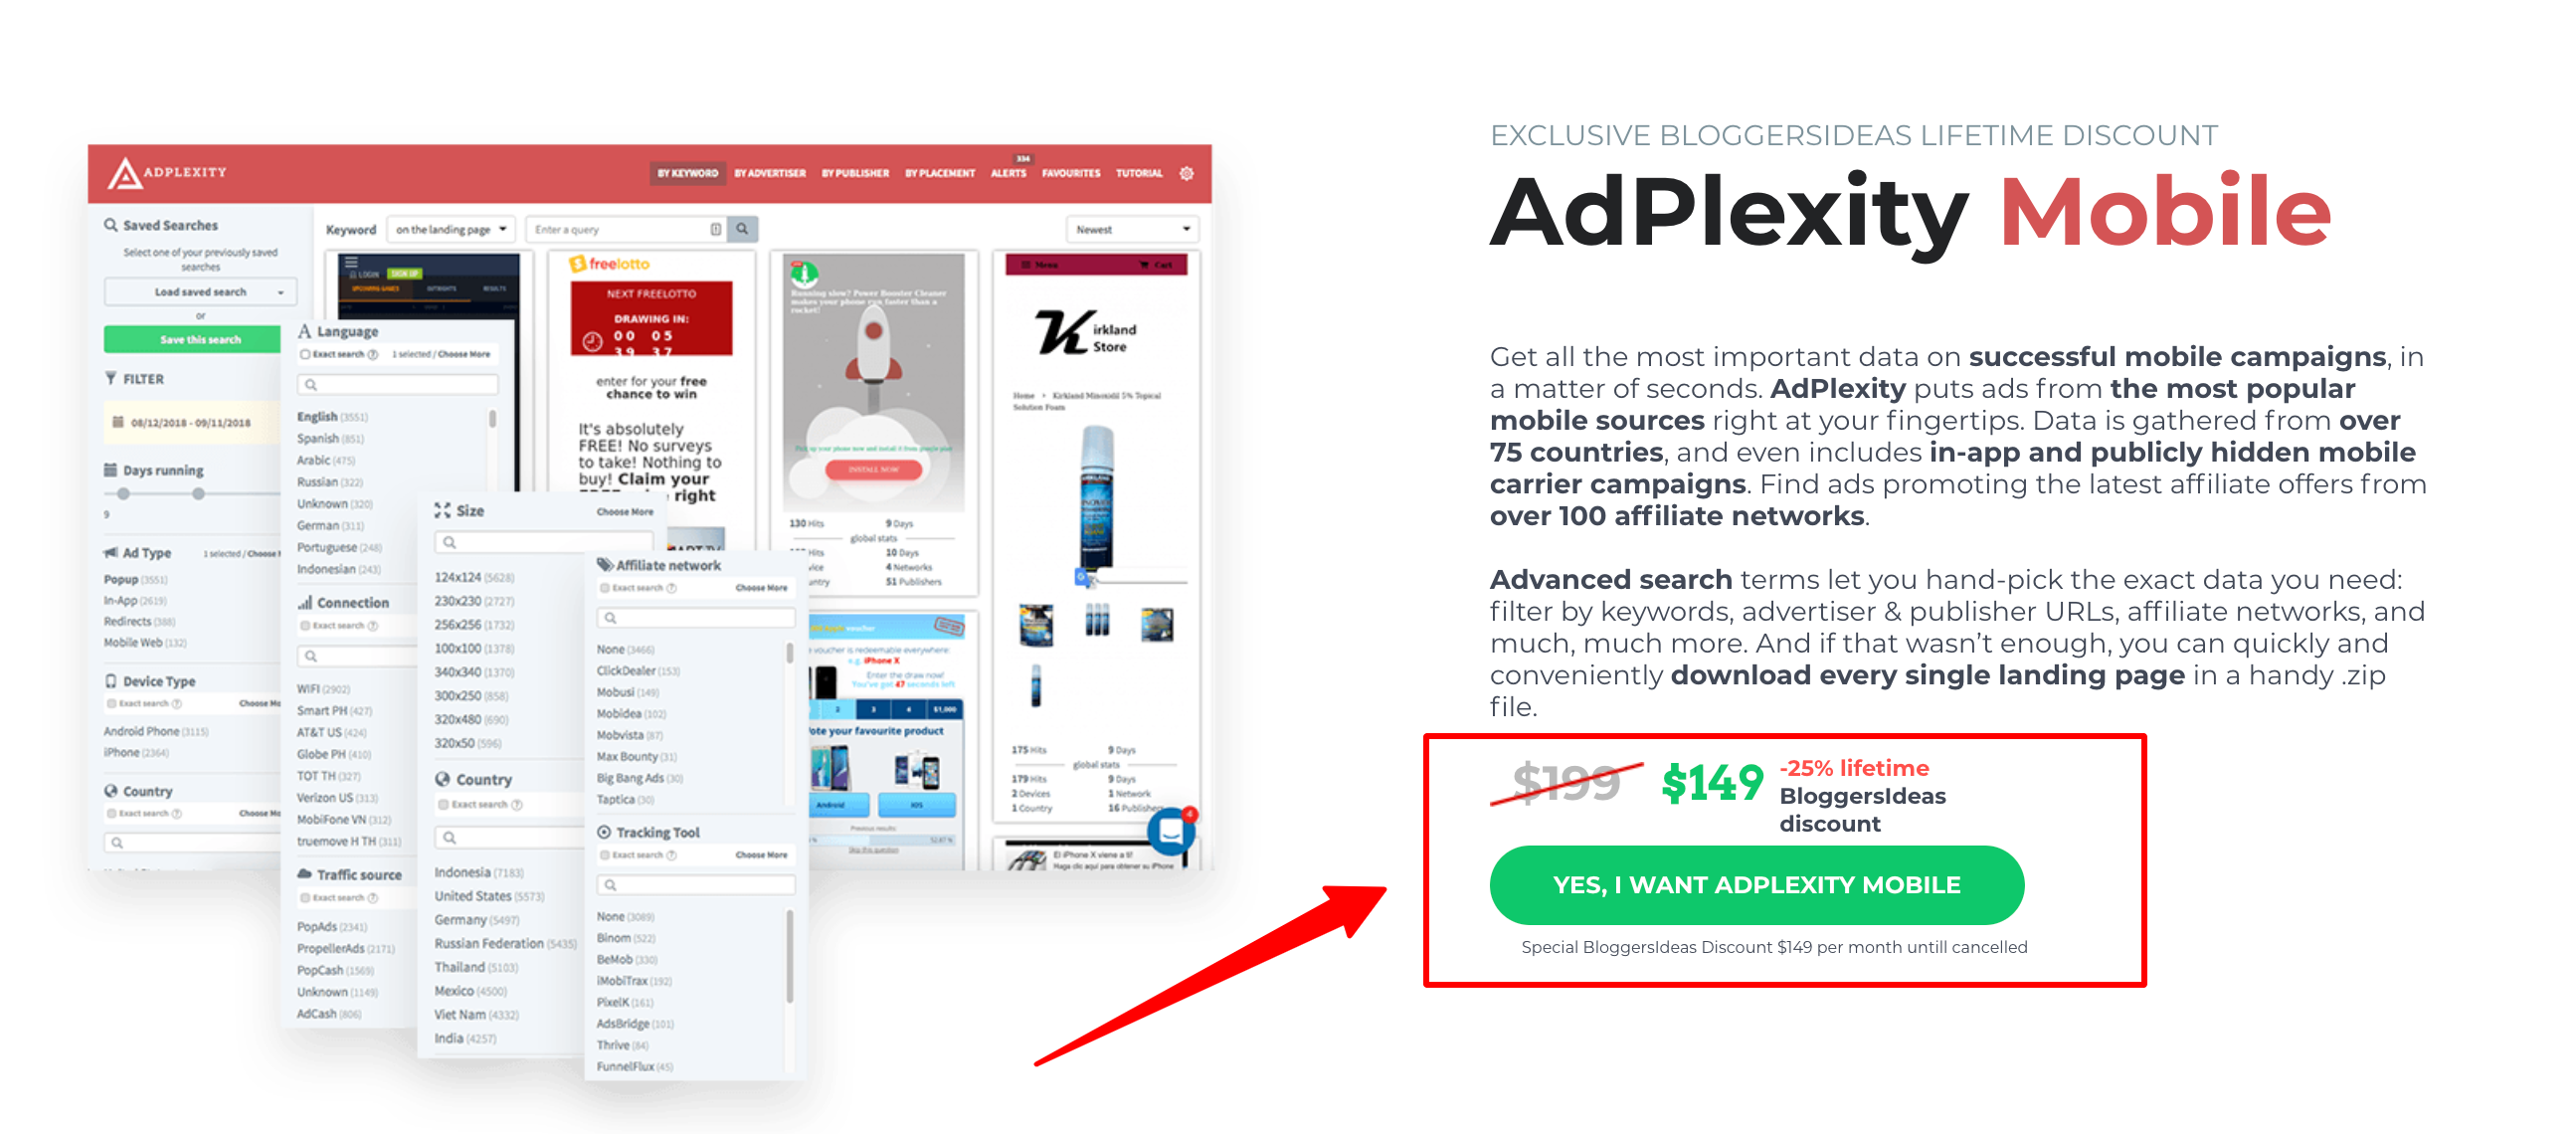 AdPlexity Mobile